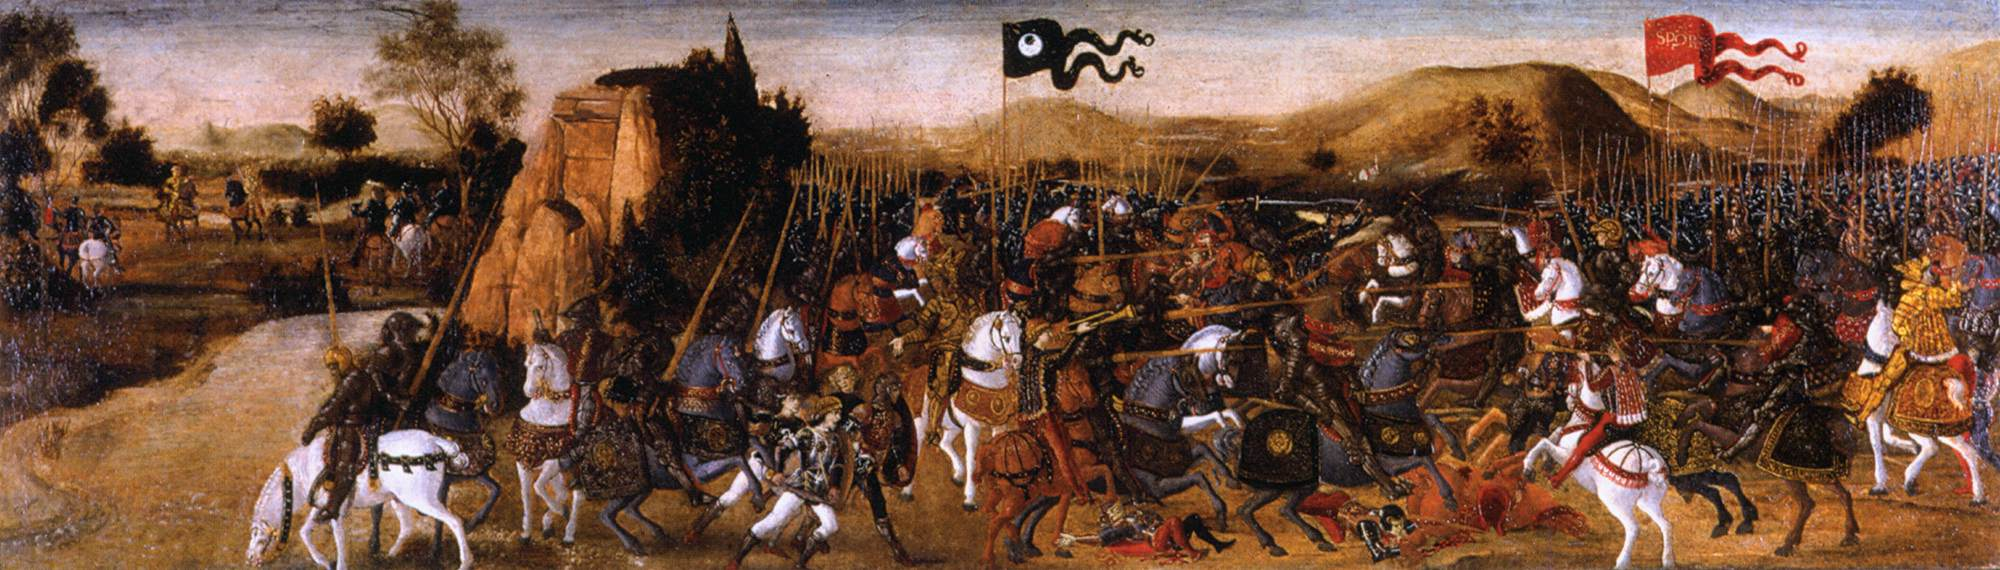 A cassone panel with the Battle of Pydna, cr. 1475, Andrea Verrocchio, Florence, Italy